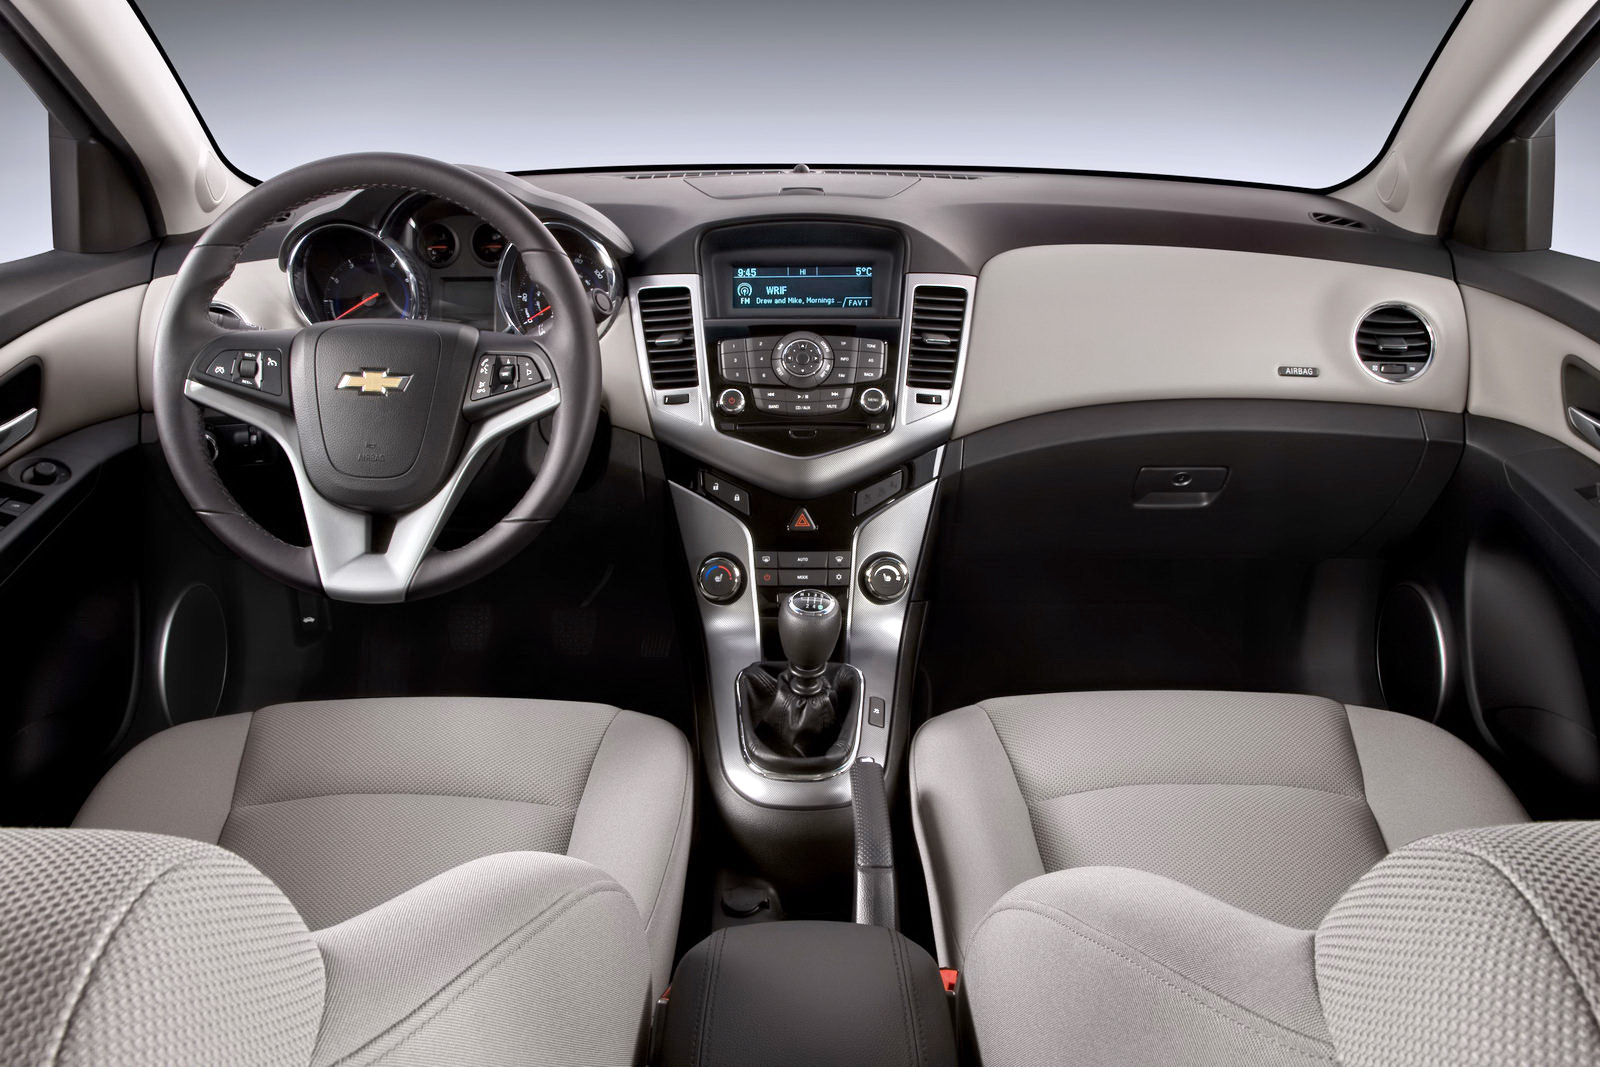 Chevrolet Cruze Eco Interior - BharathAutos - Automobile ...